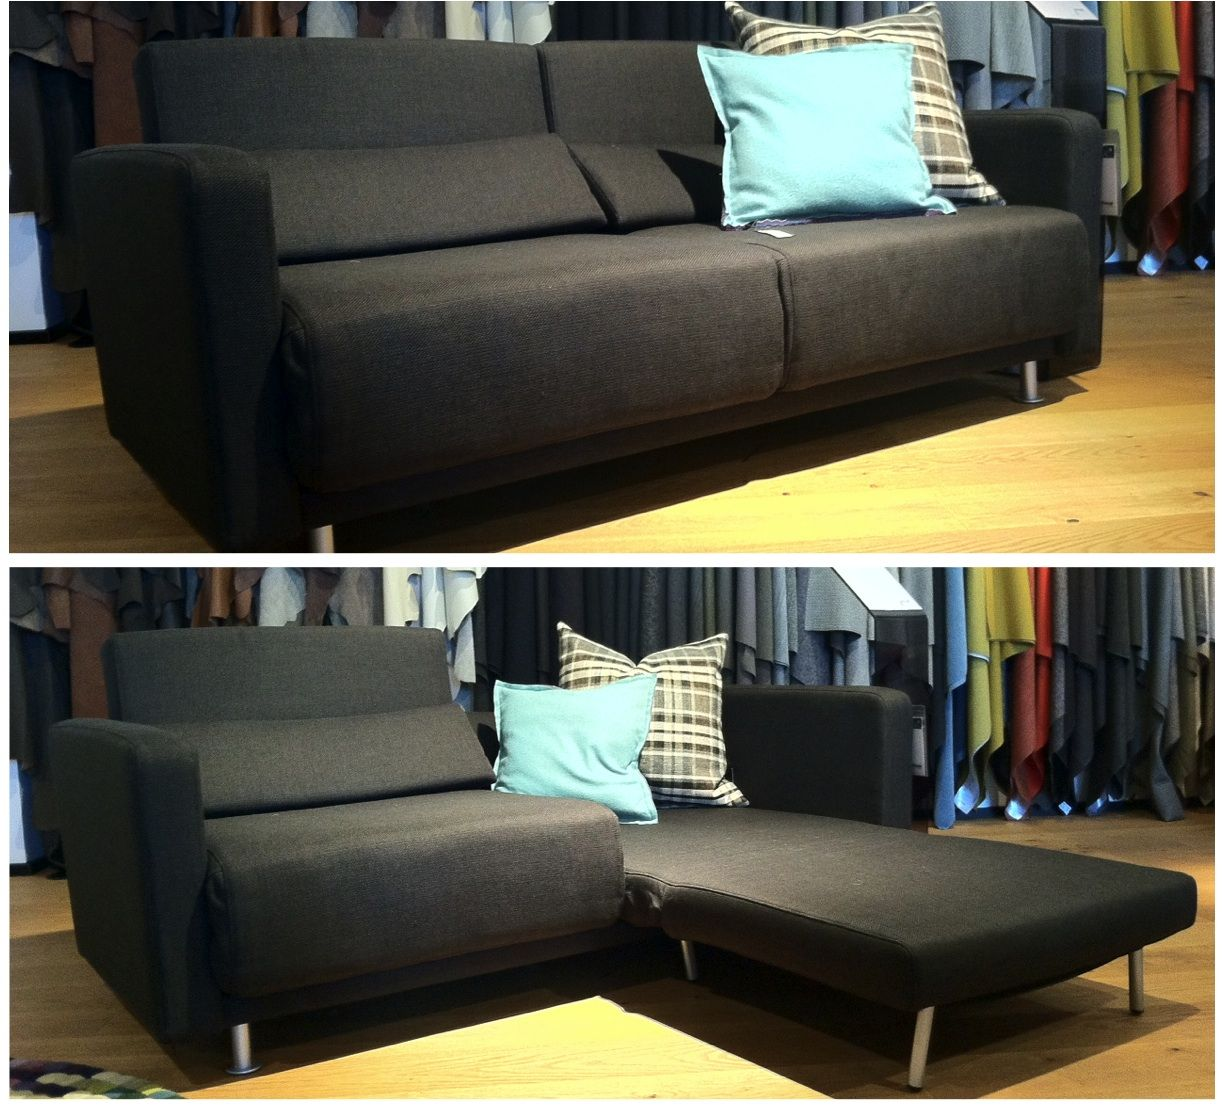 Sofa Boconcept Boconcept Sofa With Reclining And Sleeping Option ...